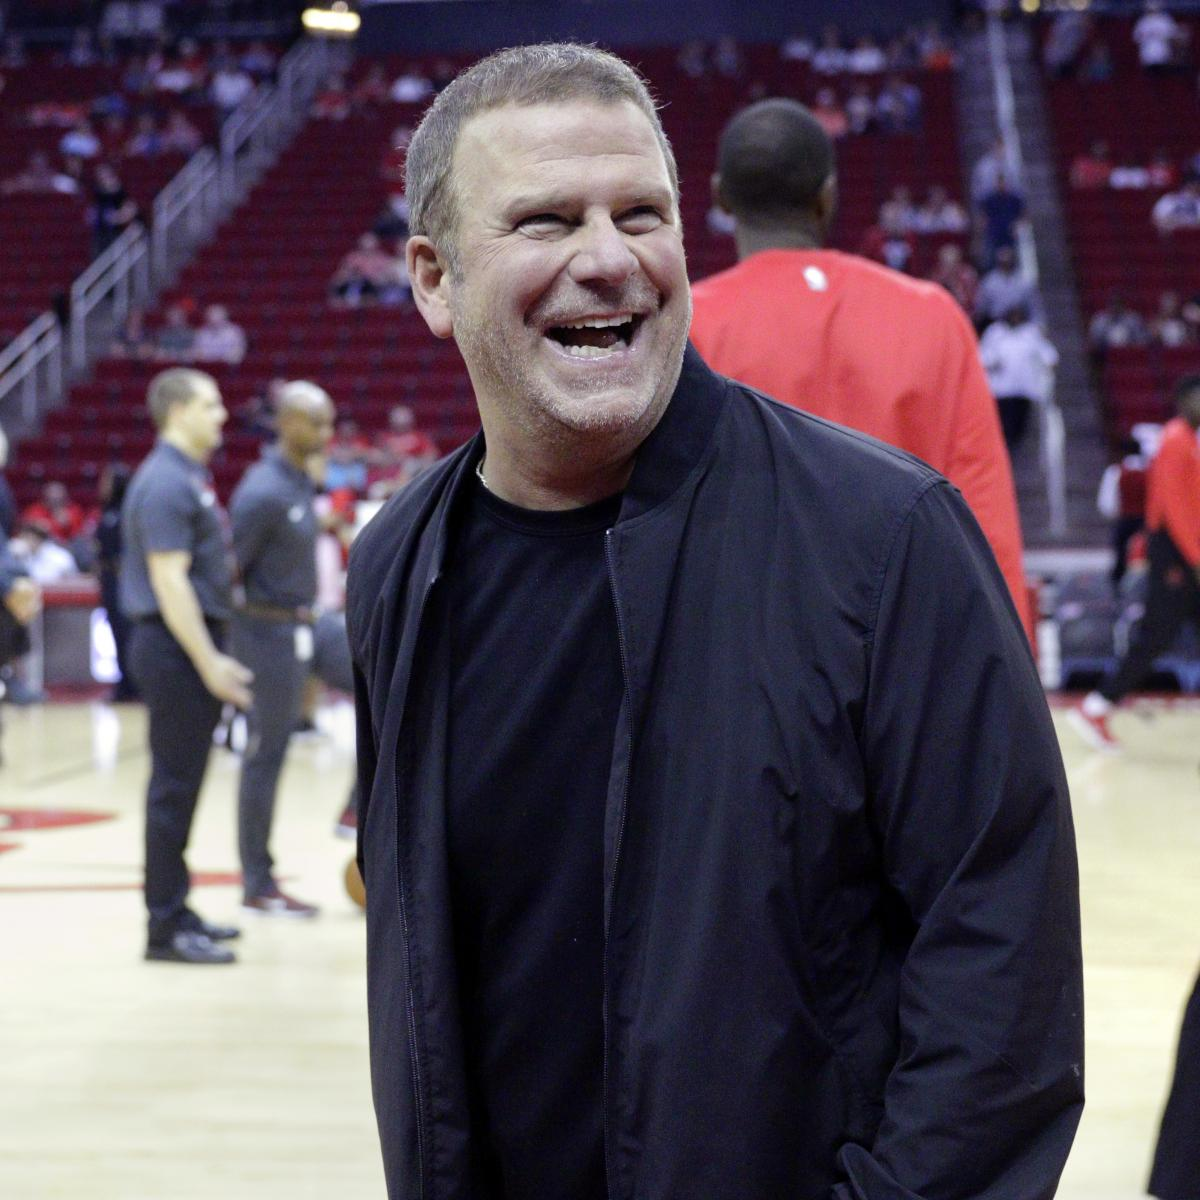 Tilman Fertitta Says Rockets 'Plan on Contending' After Daryl Morey's Departure